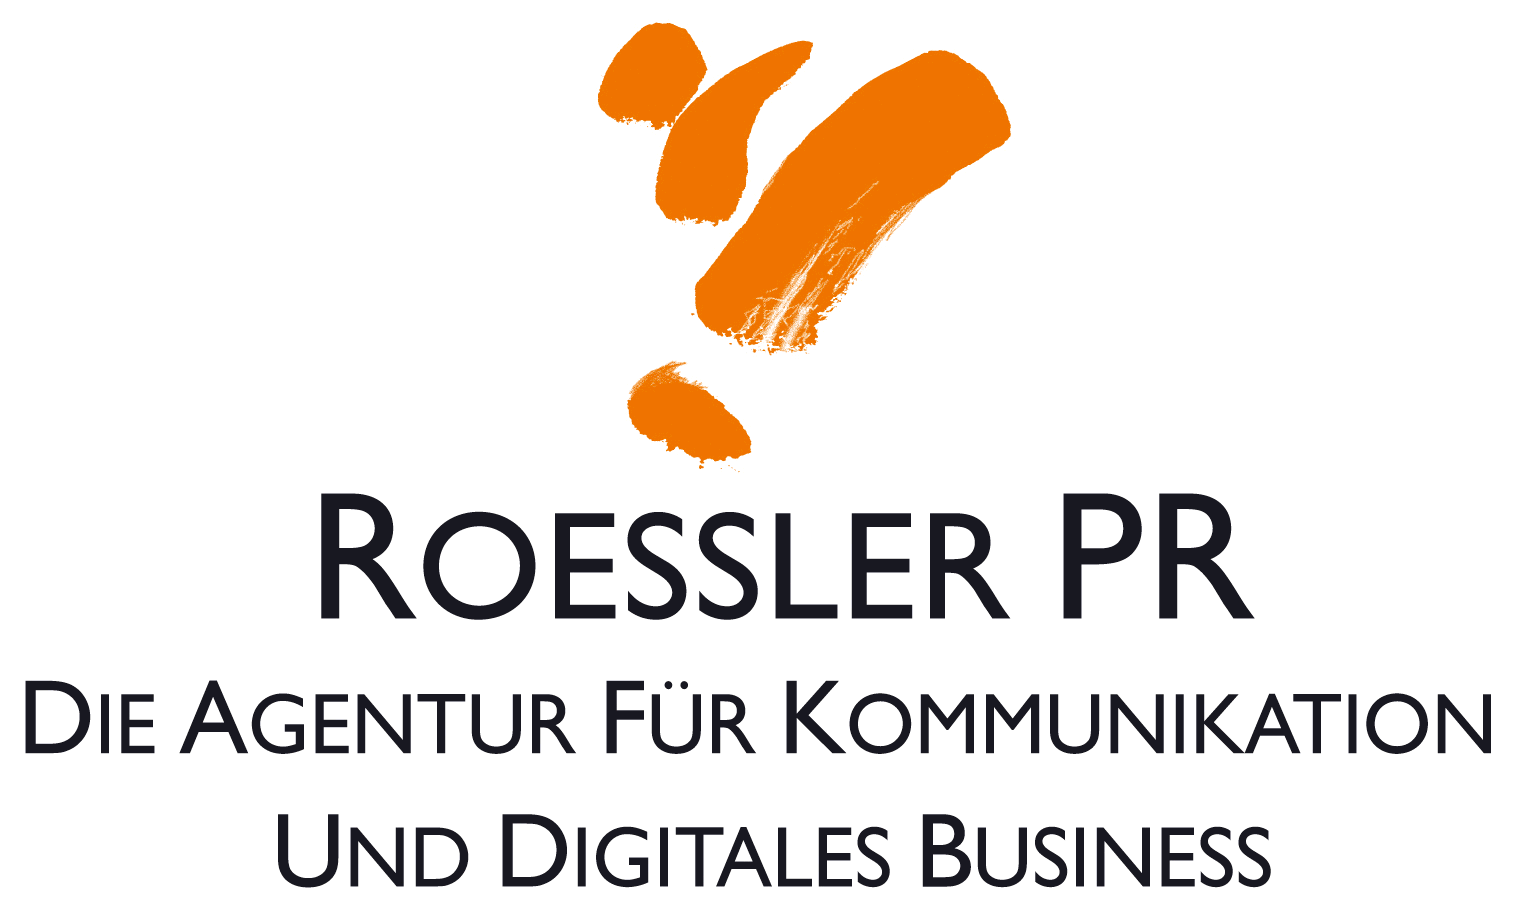 Automotive Pressefach - ROESSLER PR Agentur für Kommunikation und Digitales Business